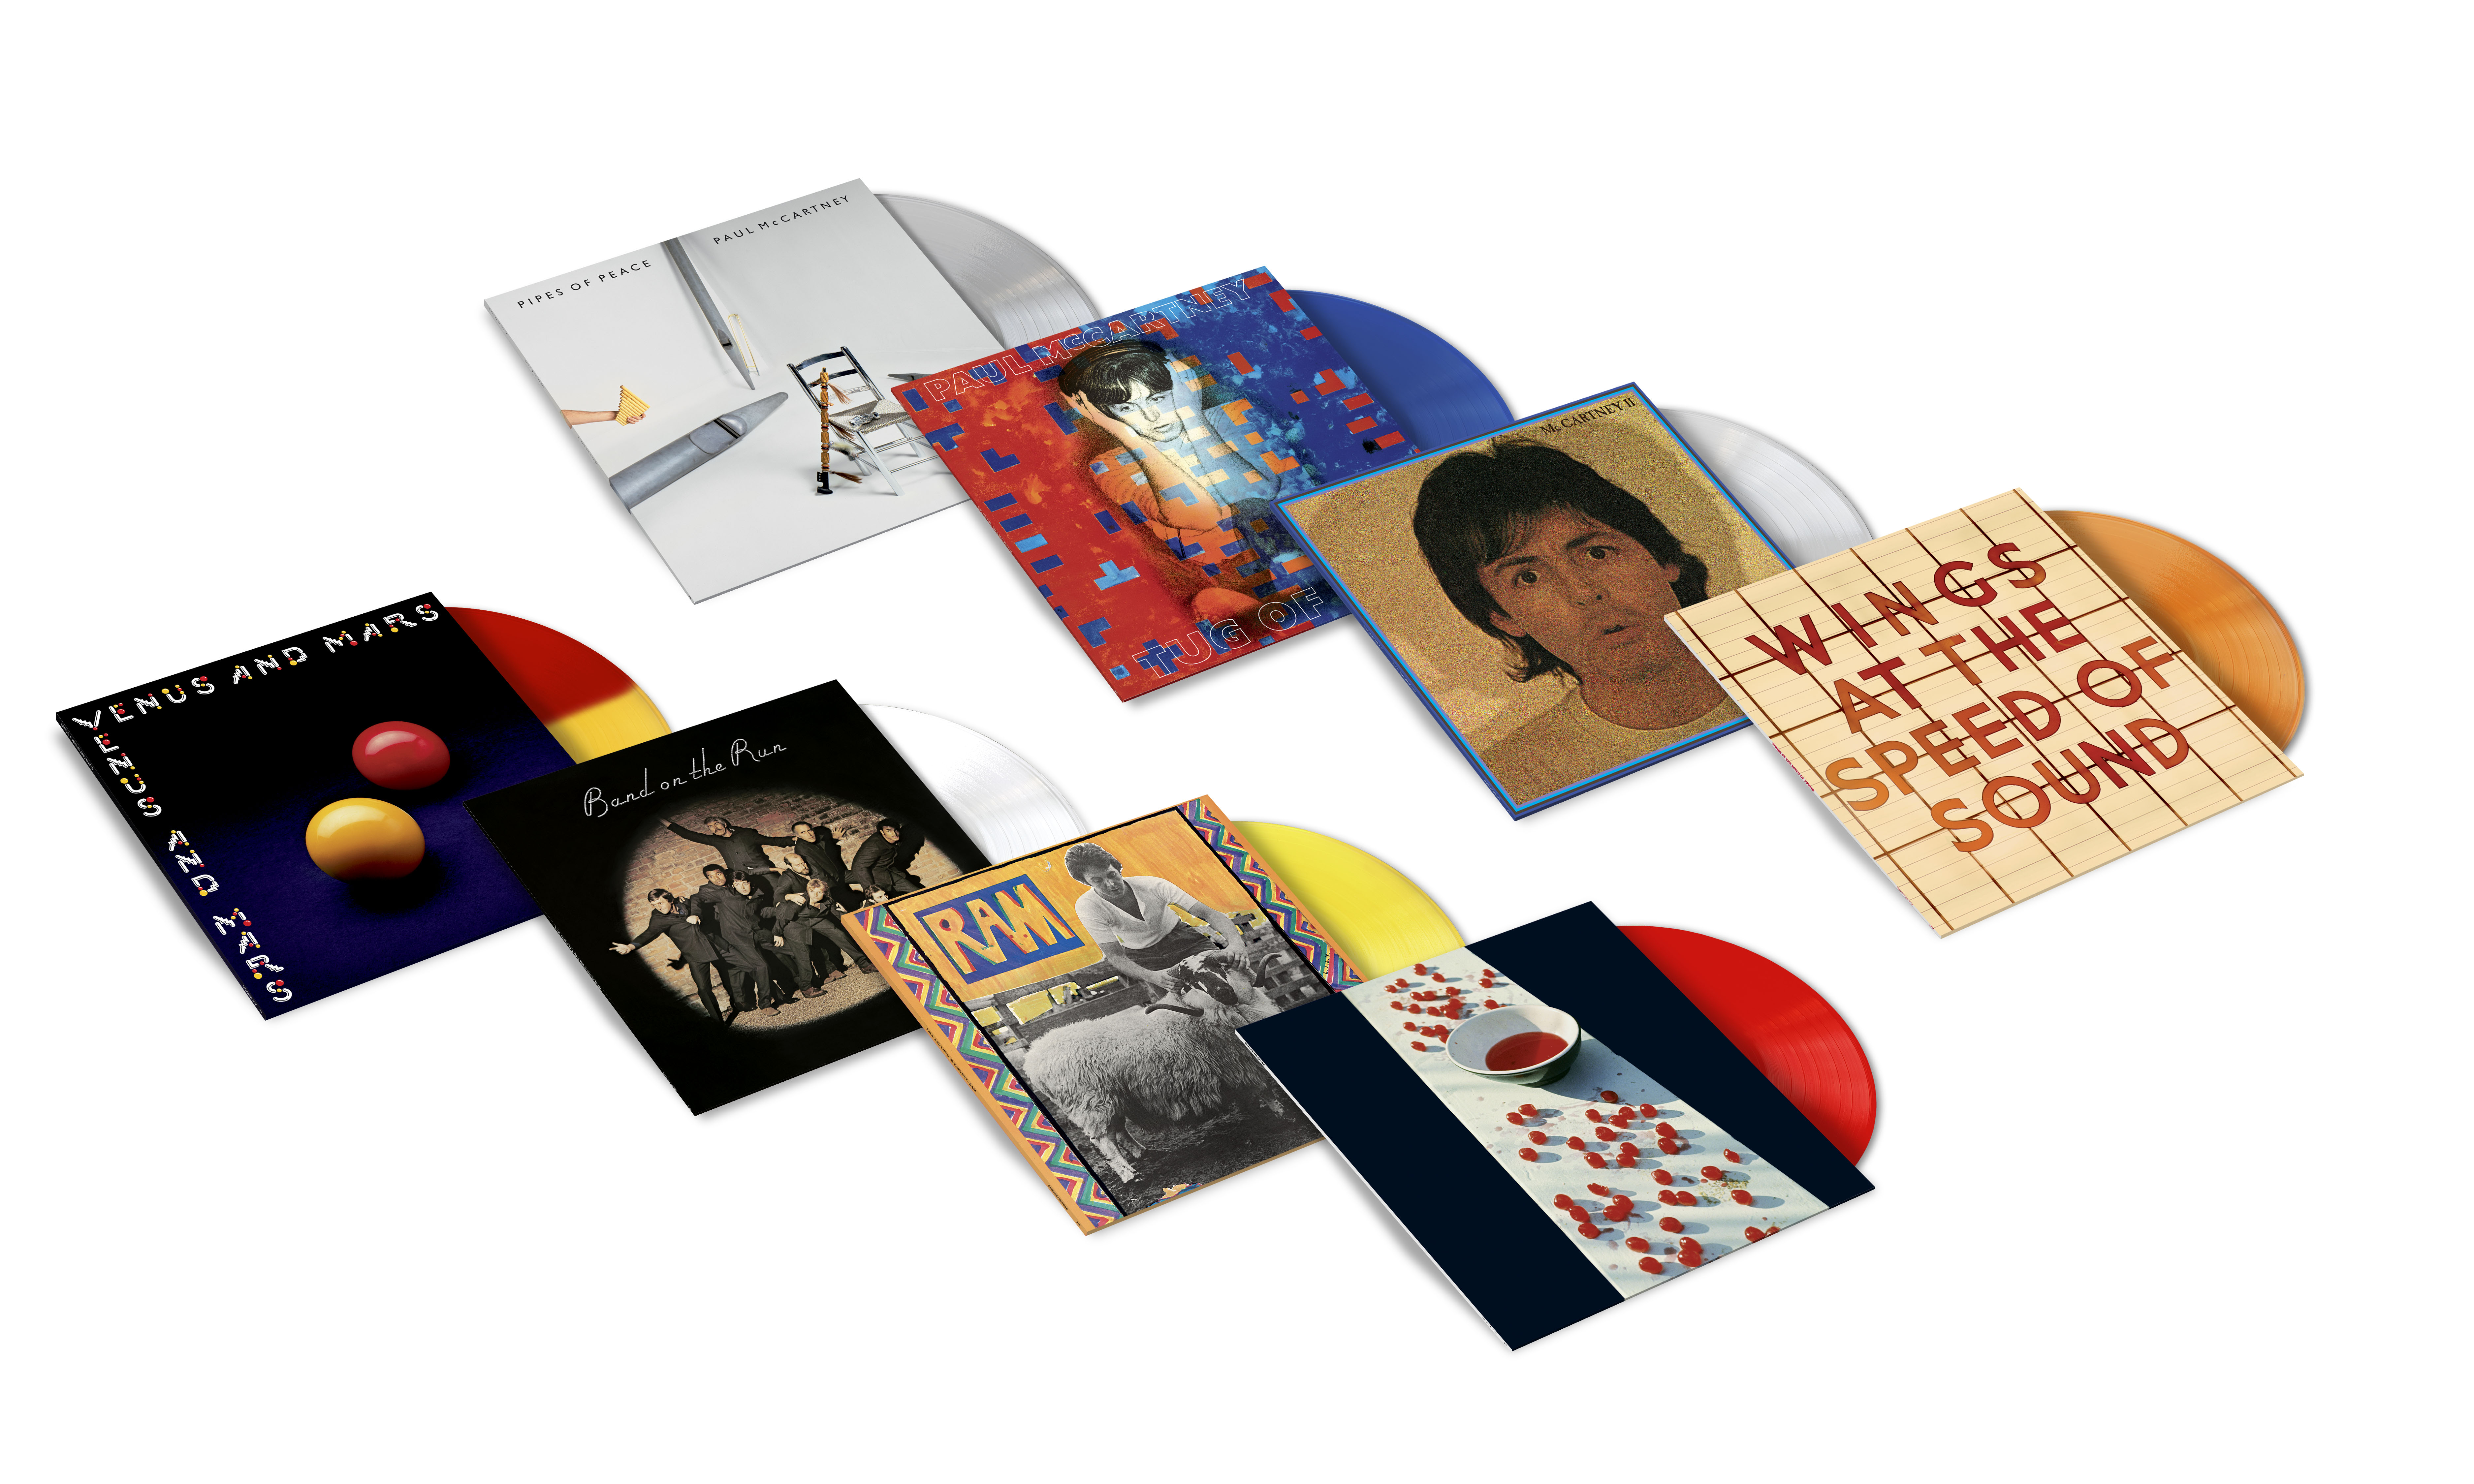 PAUL McCARTNEY VINYL REISSUES